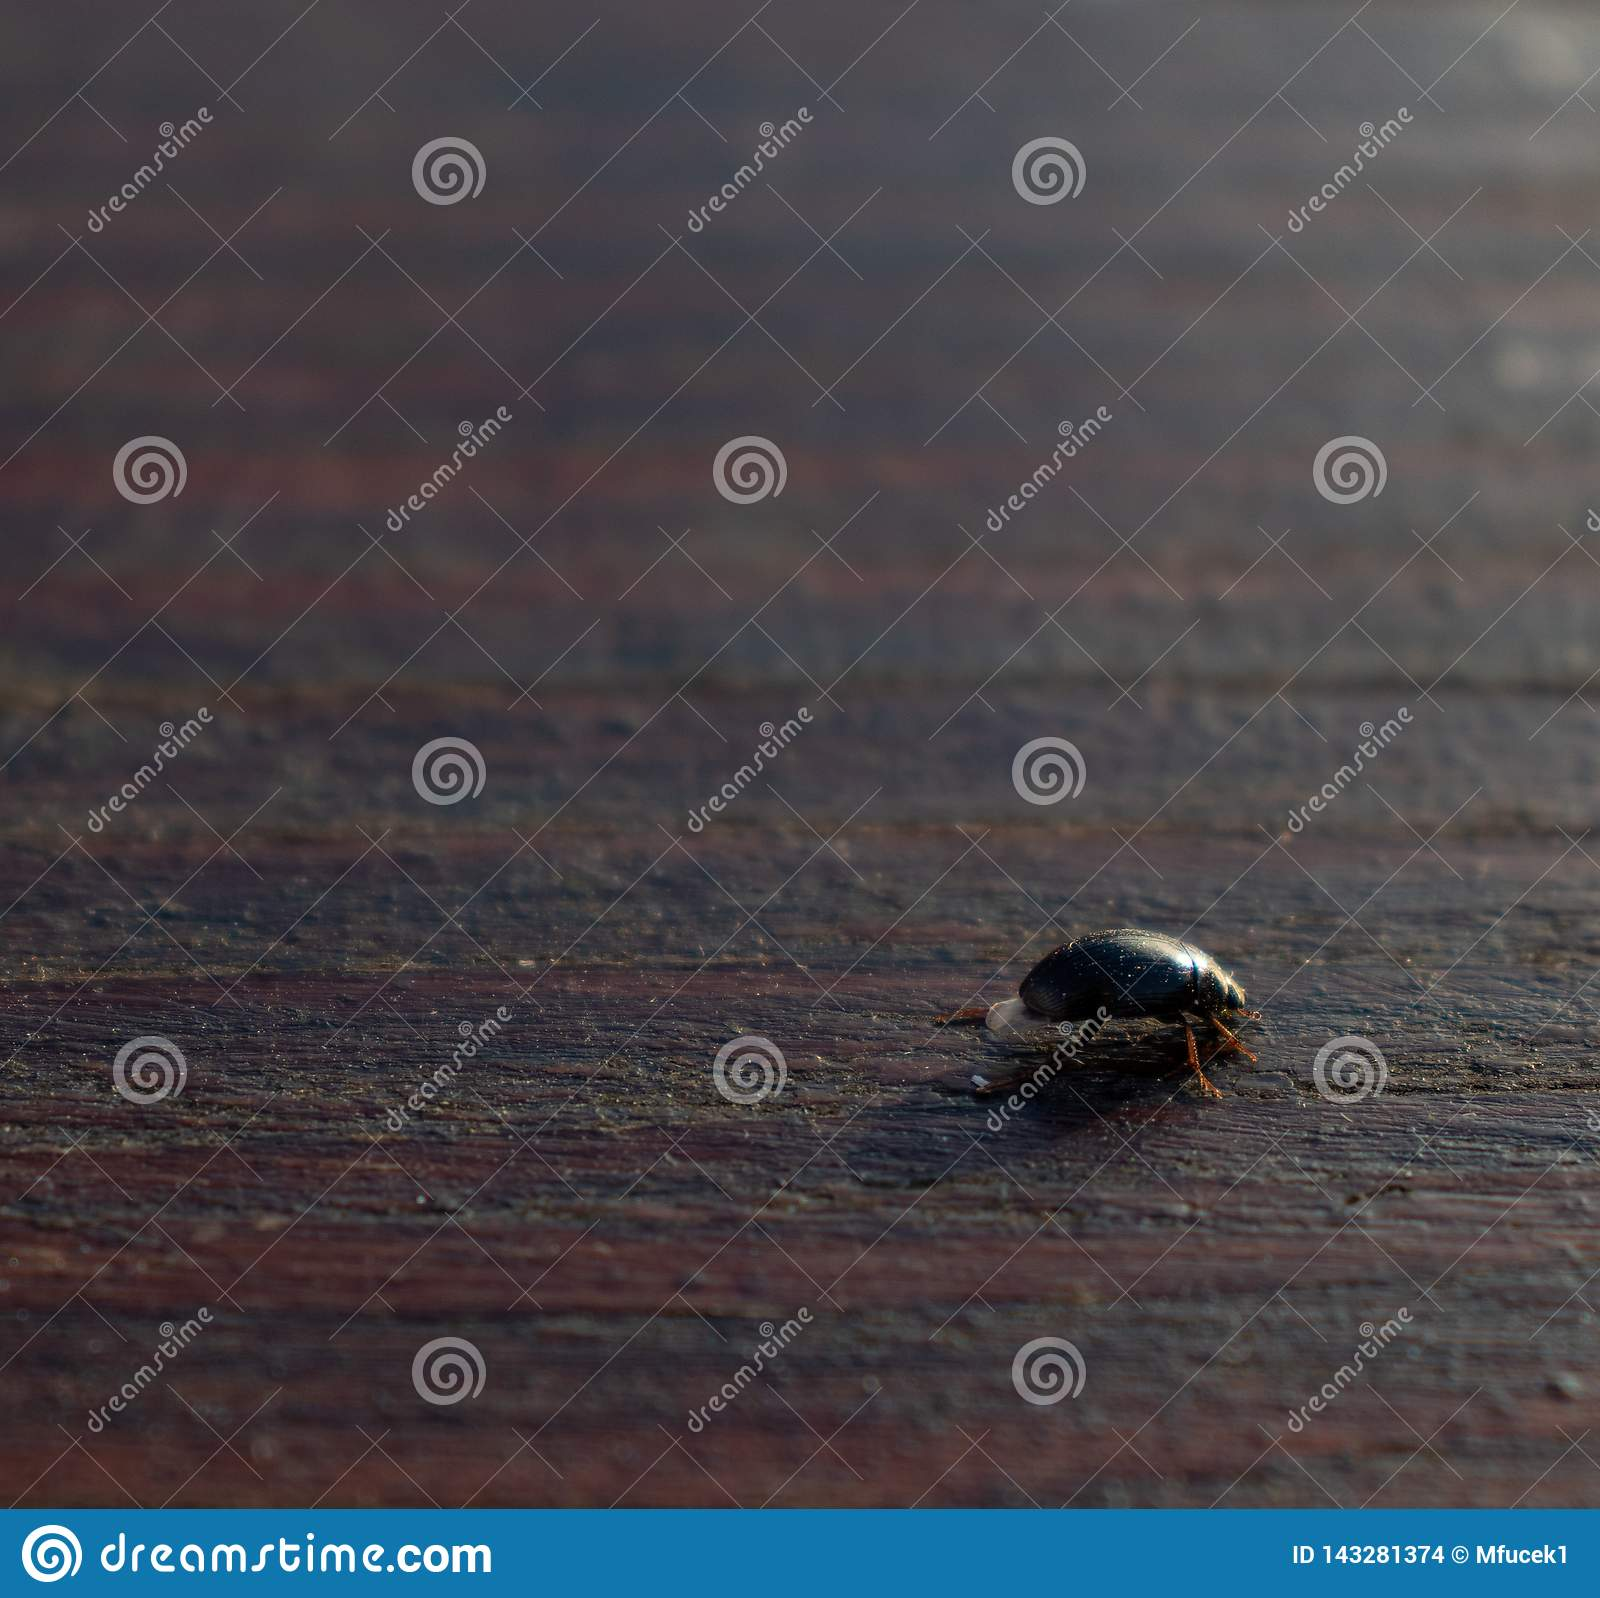 Beetle crawling on a brown wooden table